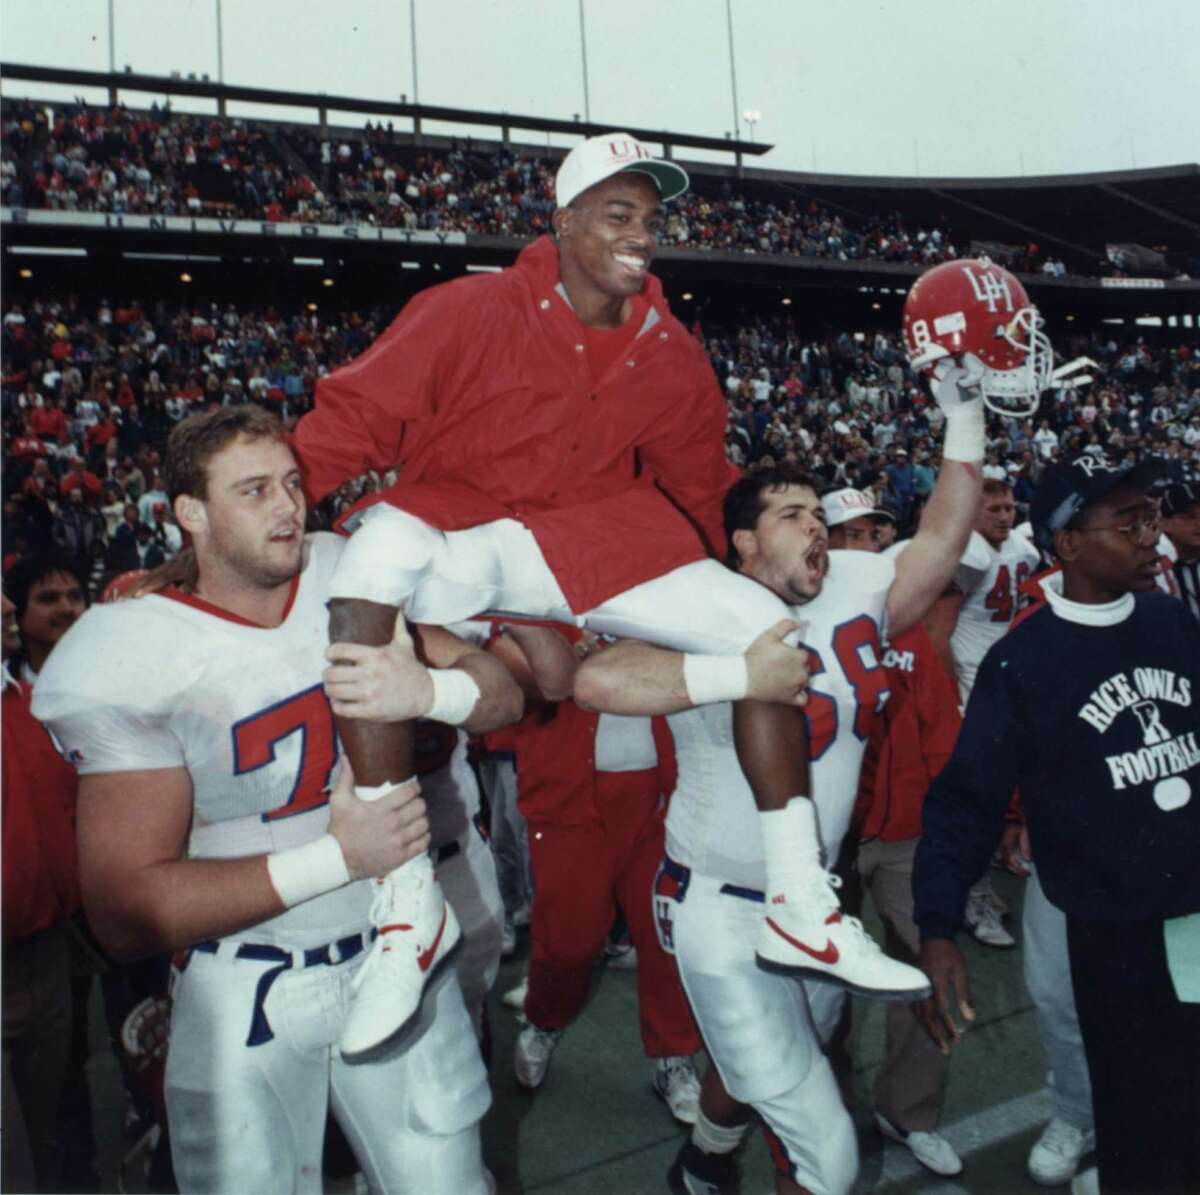 12/02/1989 - Andre Ware is carried on the shoulders of his teammates off the field after Houston's final game of the 1989 season played at Rice Stadium against the Rice Owls.